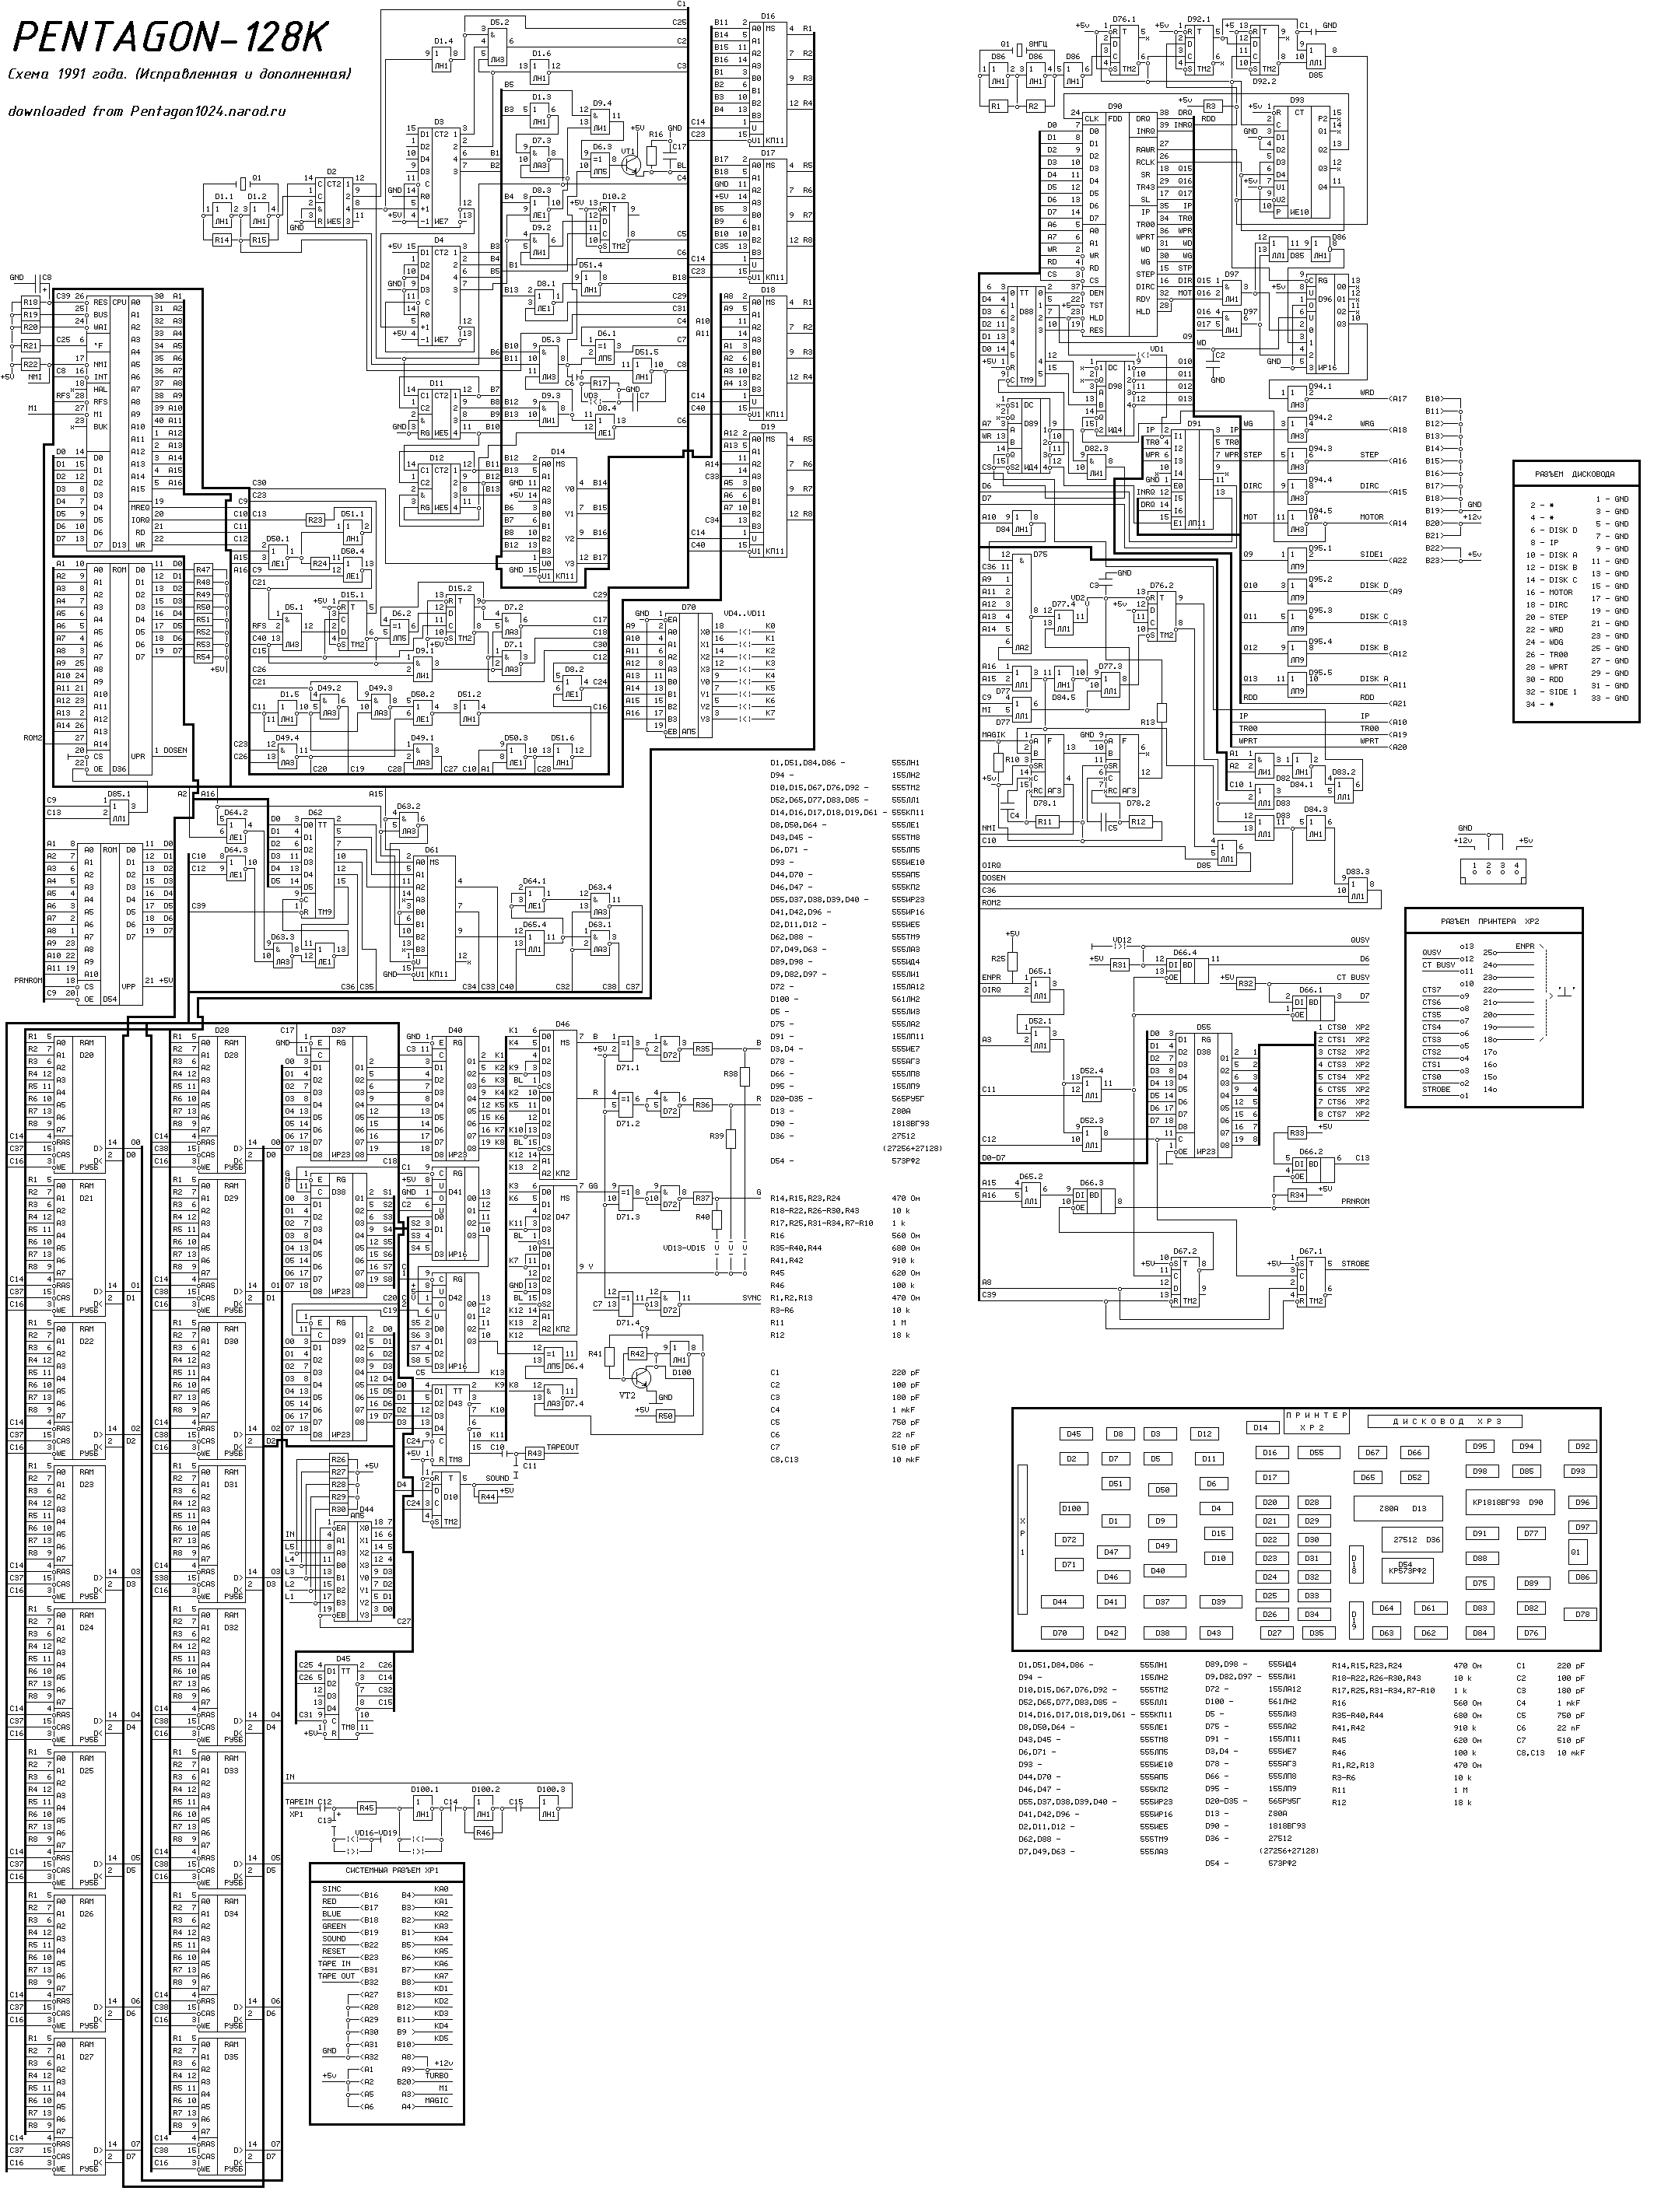 264516 Mercedes W220 Manual Pdf as well Pentagon   puter as well Home Theater Cable Wiring Schematic furthermore Power  lifier Ocl 40w By 2n3055mj2955 moreover Ctl 755 Wiring Diagram Allison. on wiring diagrams for hard drives